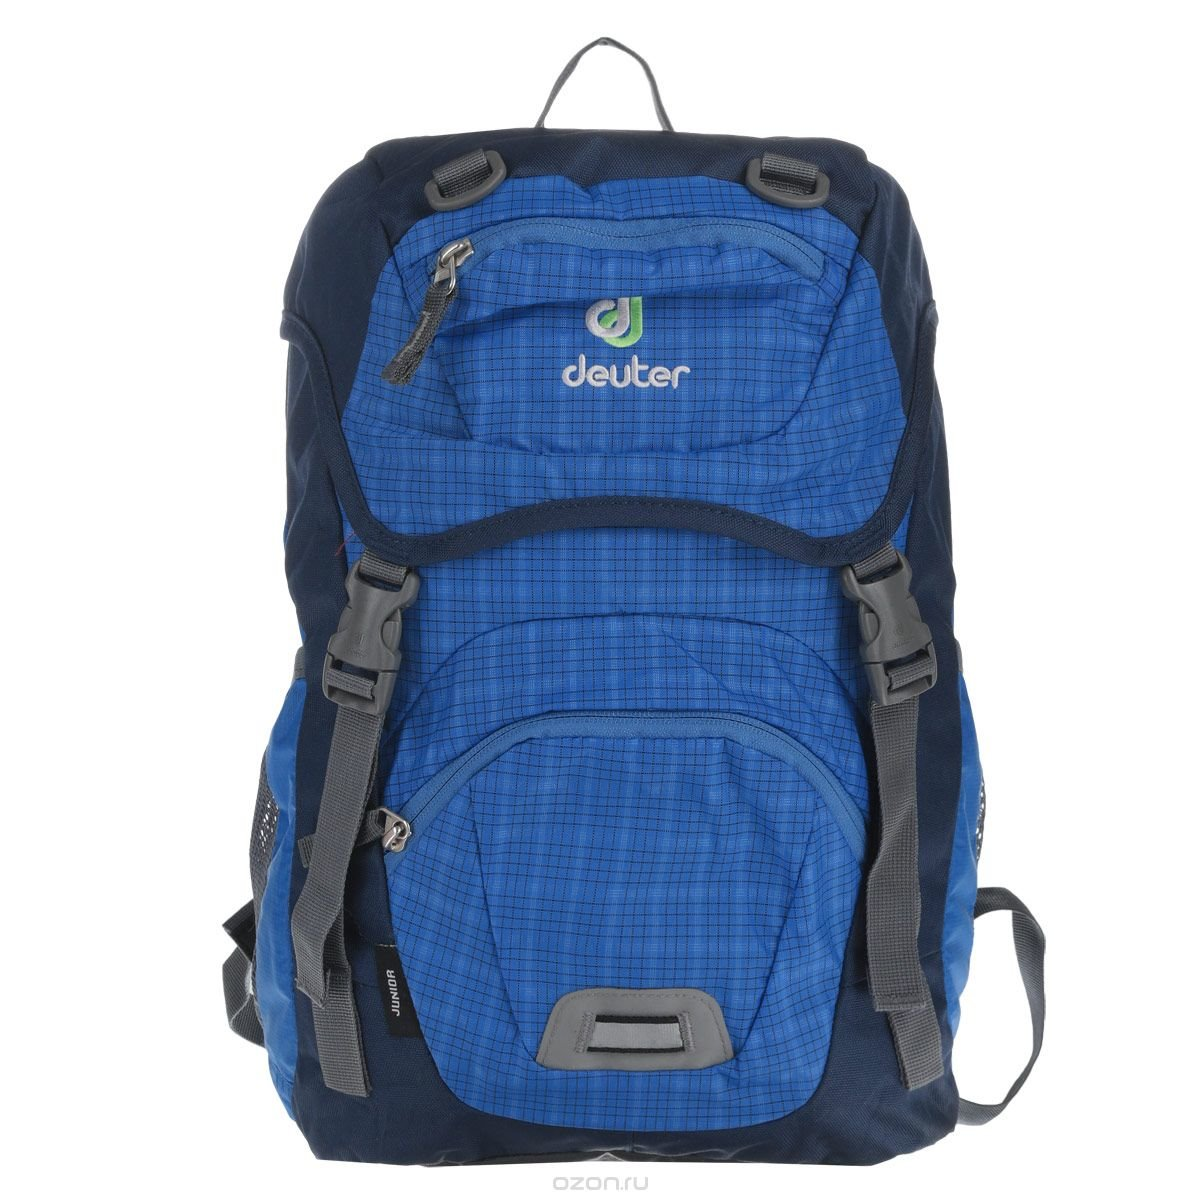 Рюкзак Deuter Junior цвет 1308 bay-navy Junior 2 3612519 1308